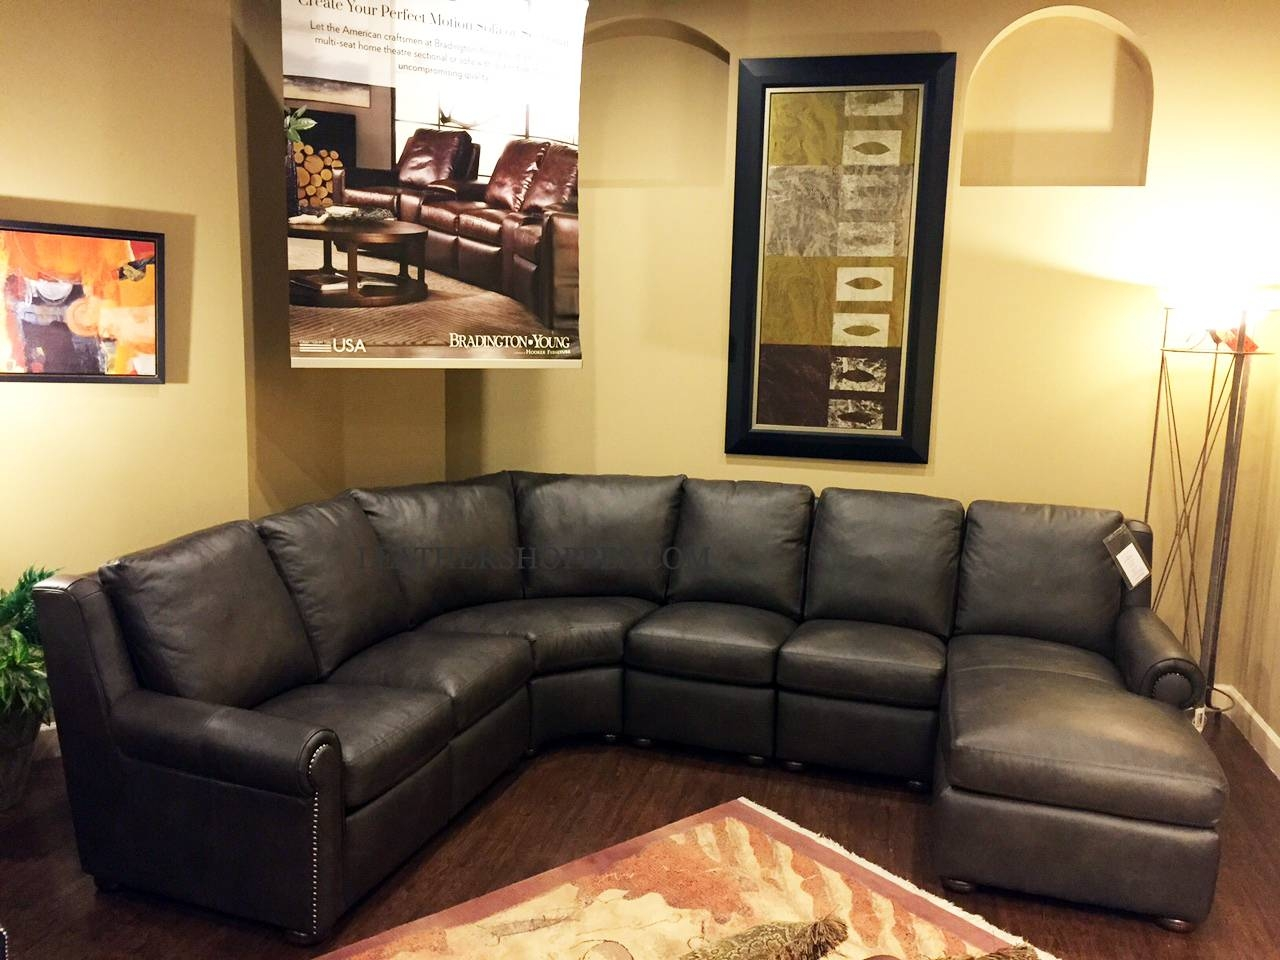 Bradington-Young Luxury Motion Furniture-Made In The Usa with regard to Motion Sectional Sofas (Image 2 of 30)